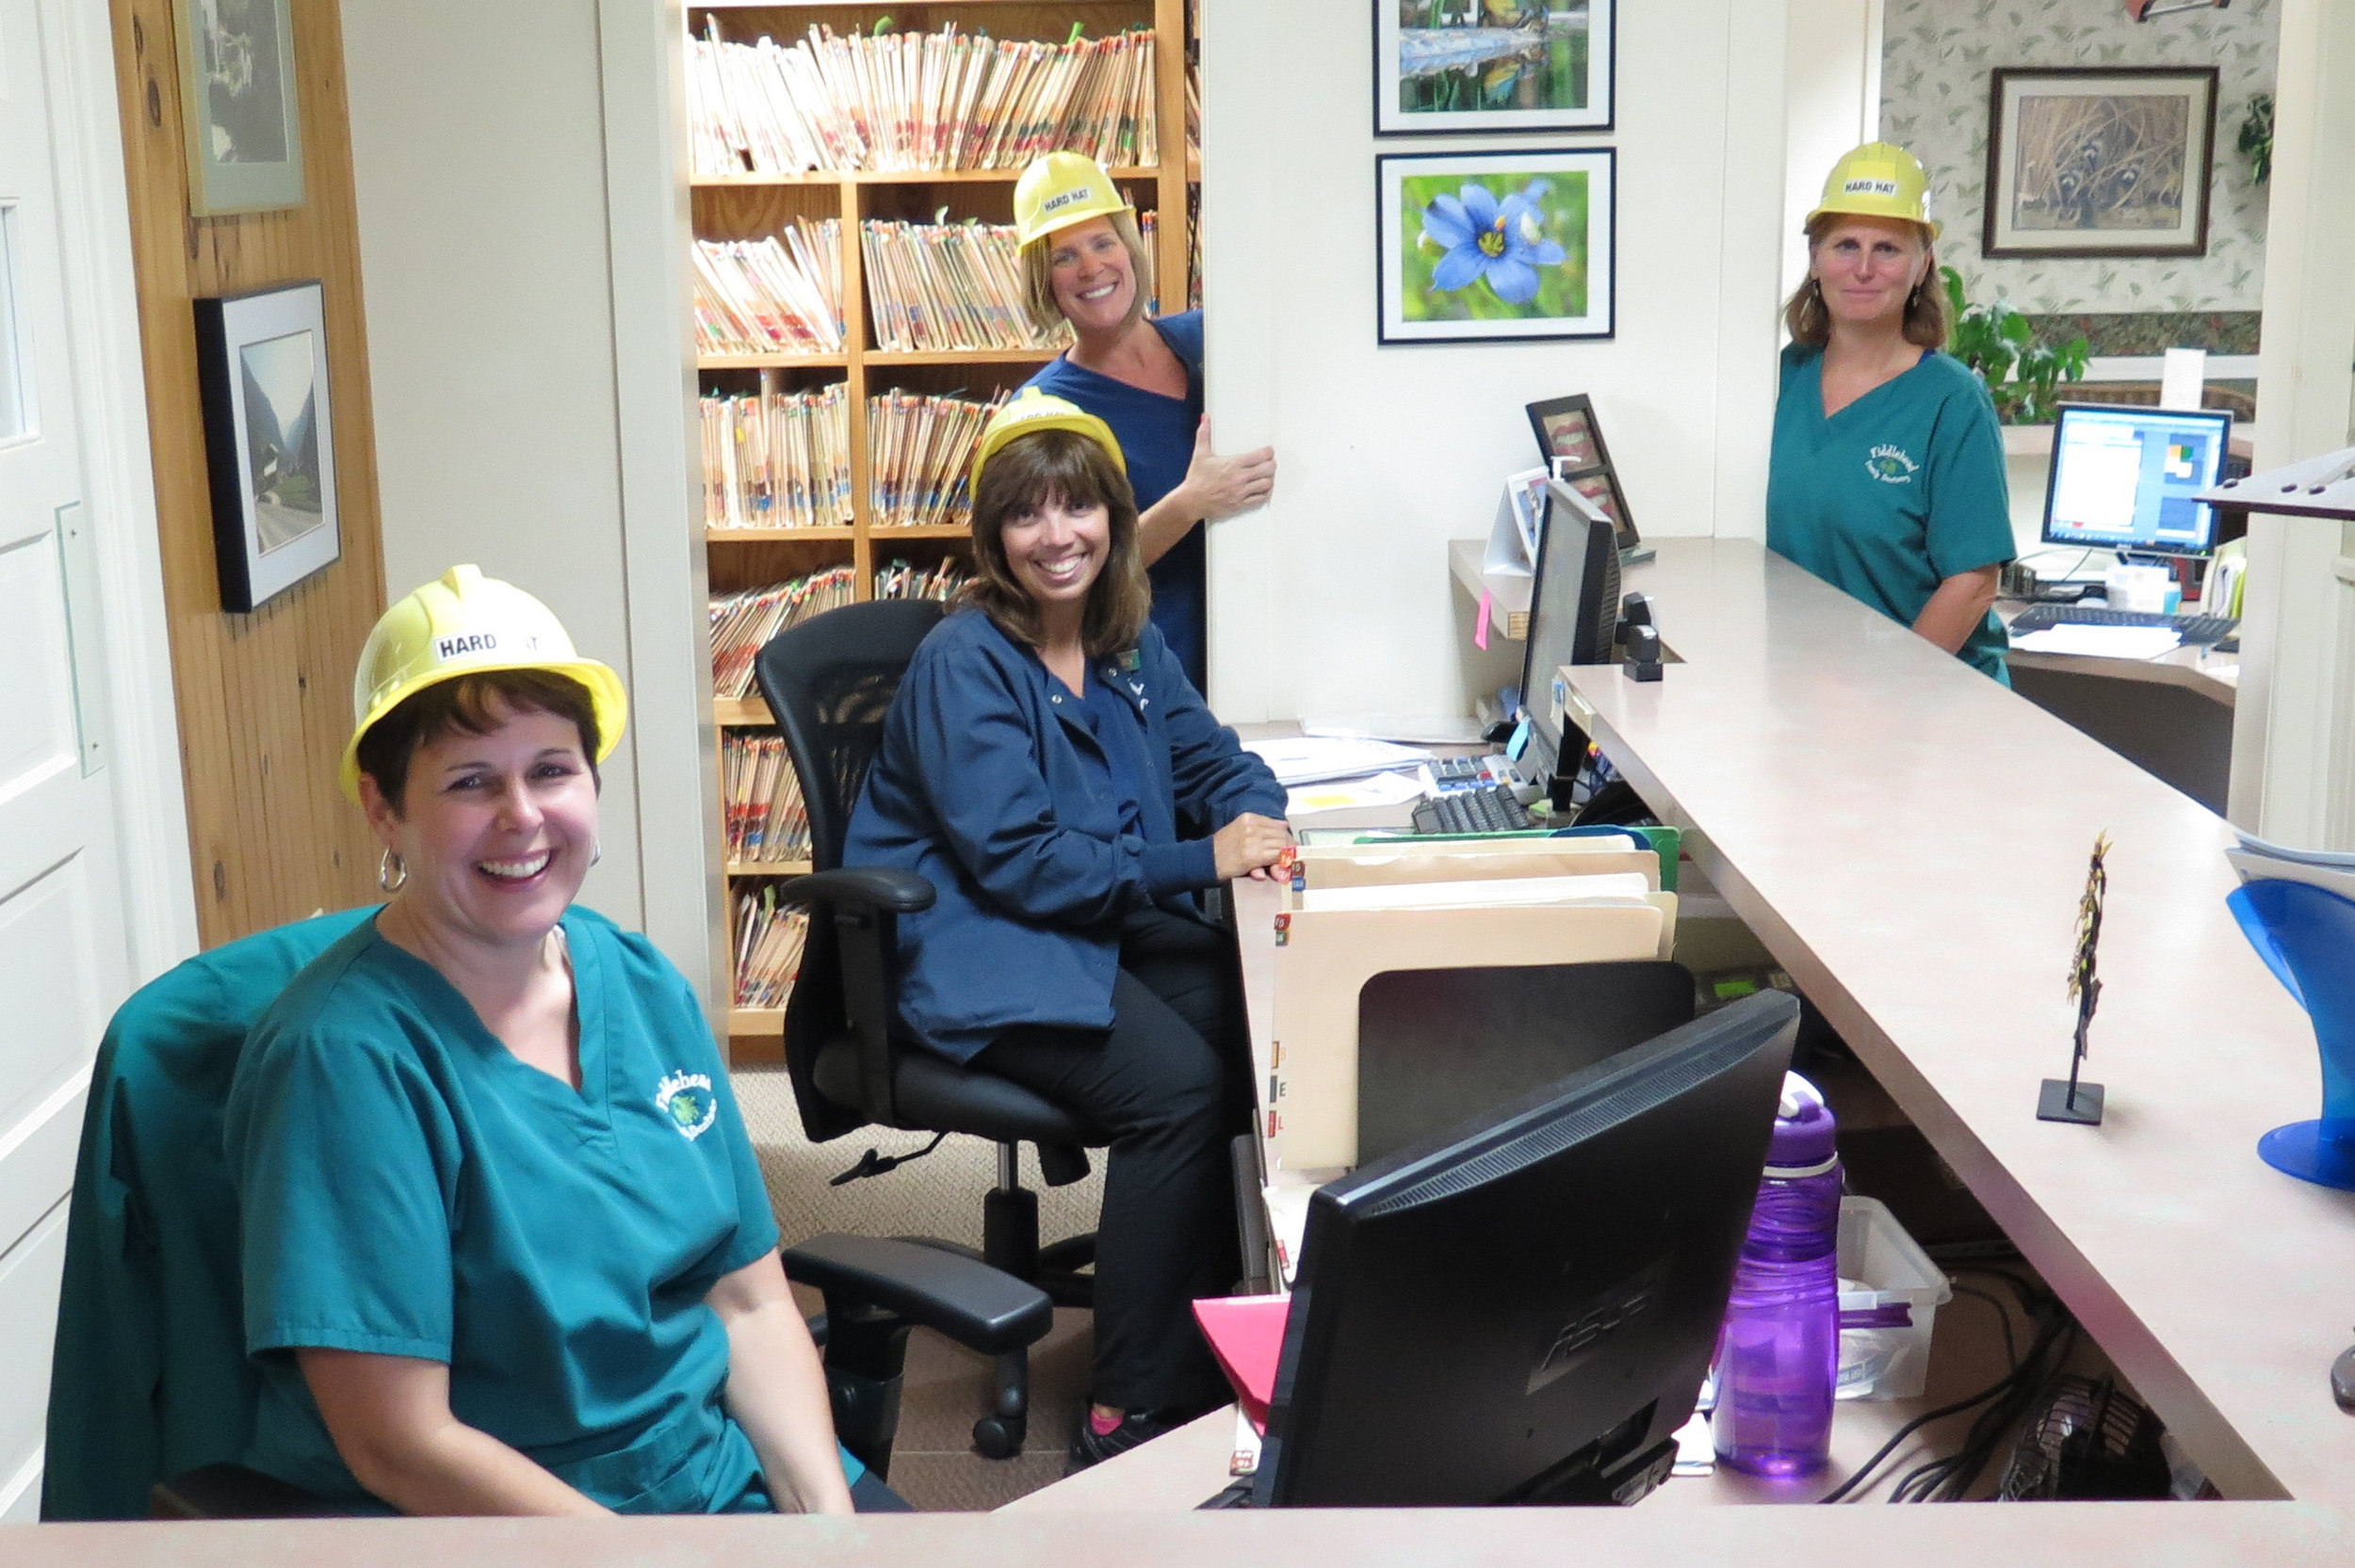 the team wears their hard hats for fun on the day that we had almost no septic access. This is typical of our team: making lemonade out of lemons!